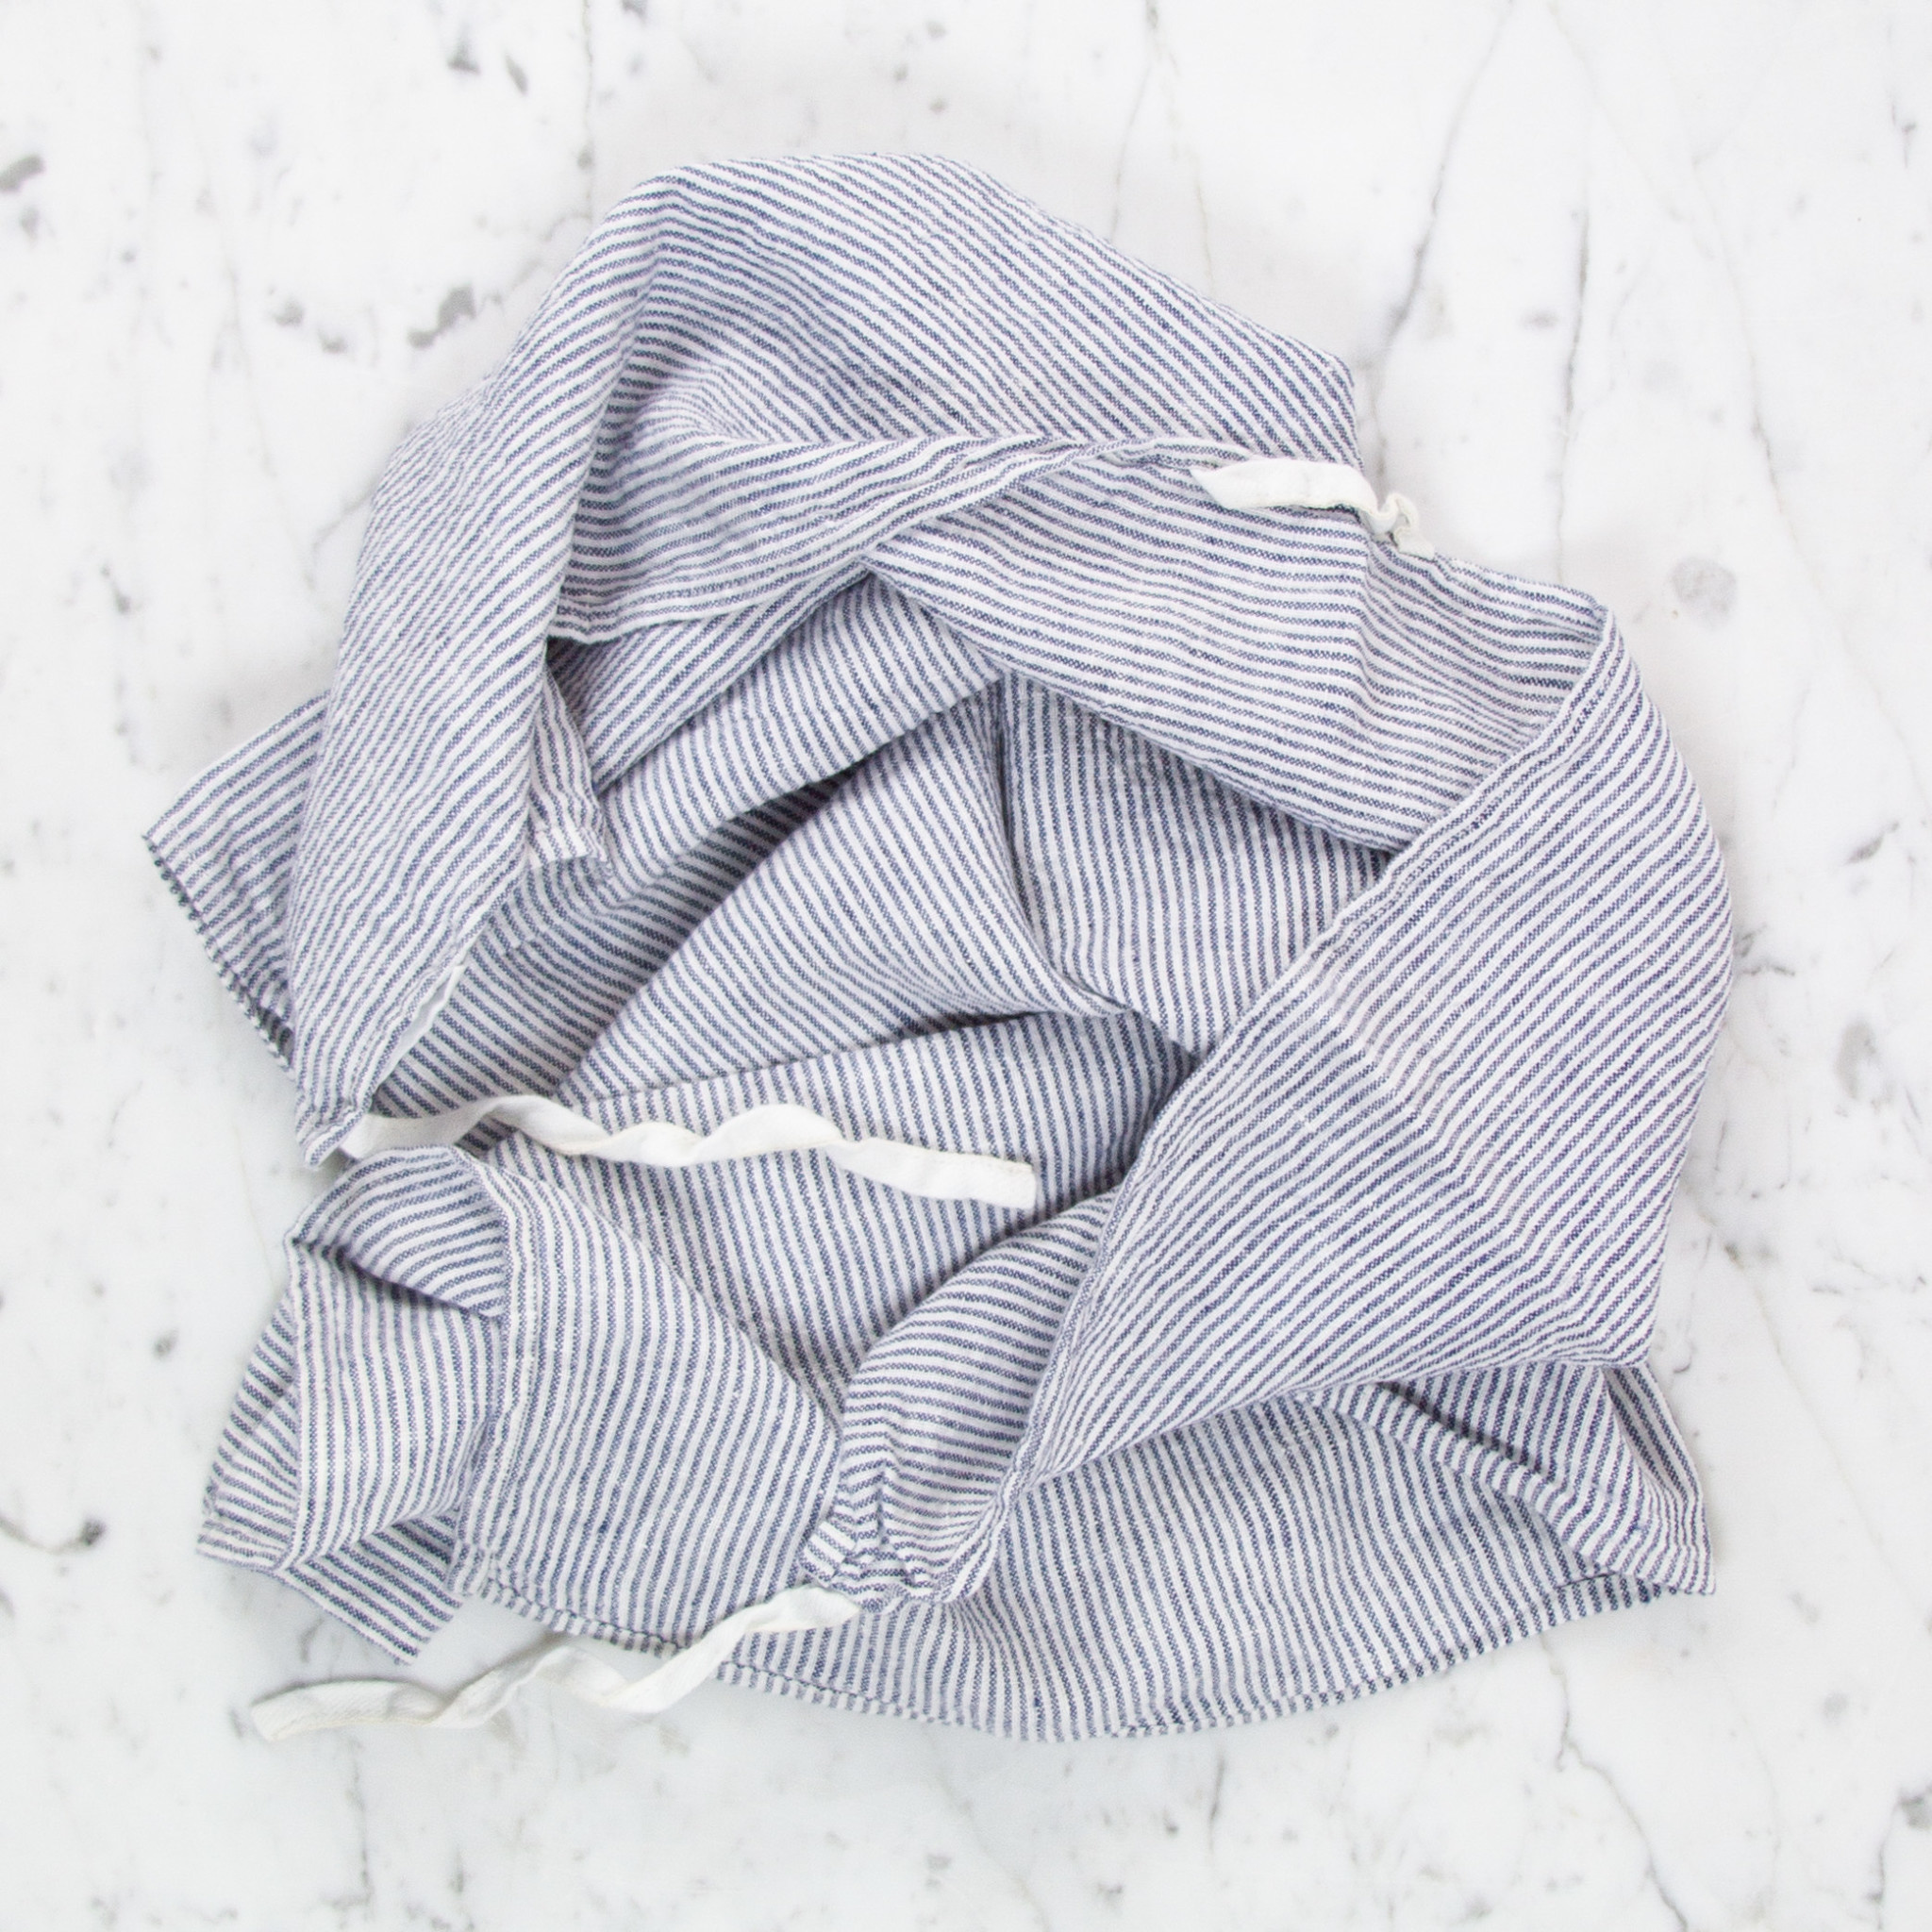 Washed French Linen Dish or Hand Towel with Hidden Apron Strings - Navy Blue + White Stripe